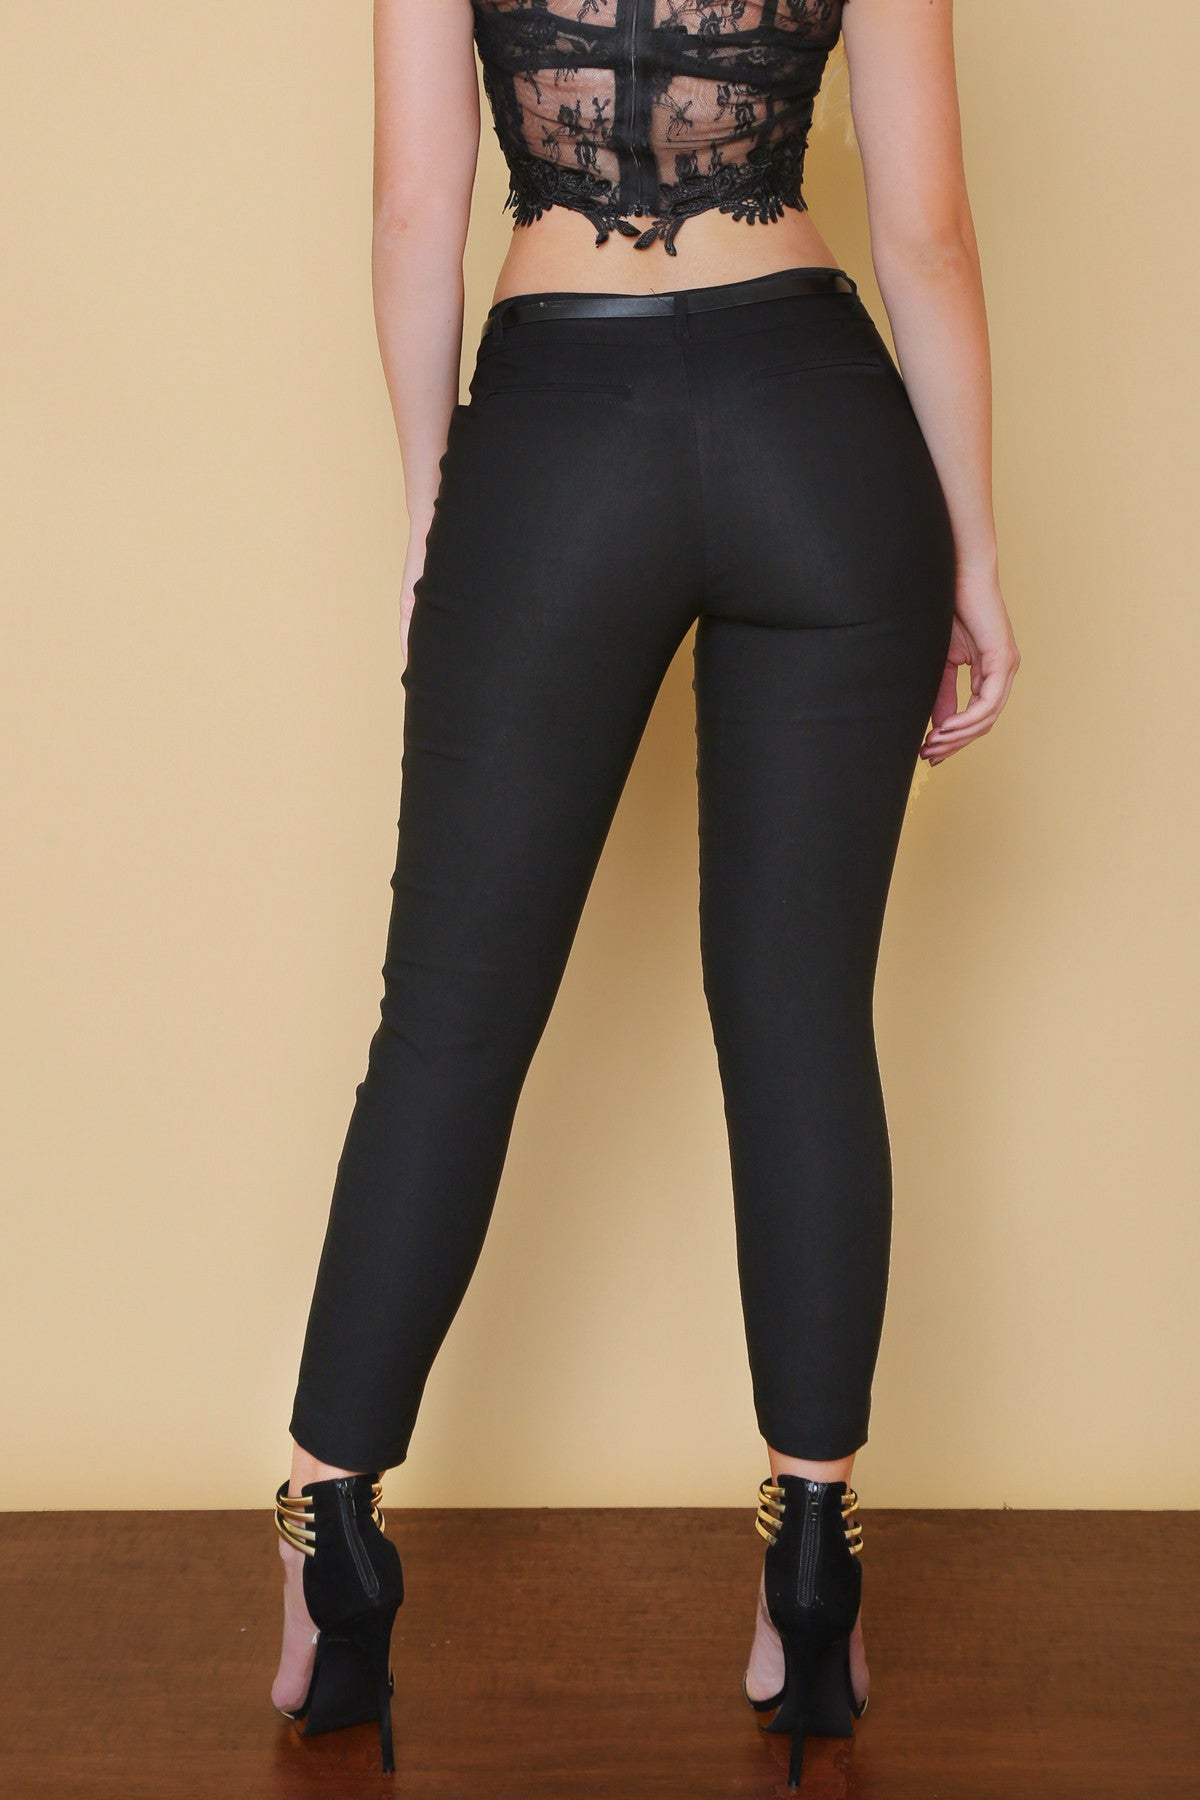 RESTOCK Get Down To Business Pants BLACK - Fashion Effect Store  - 2